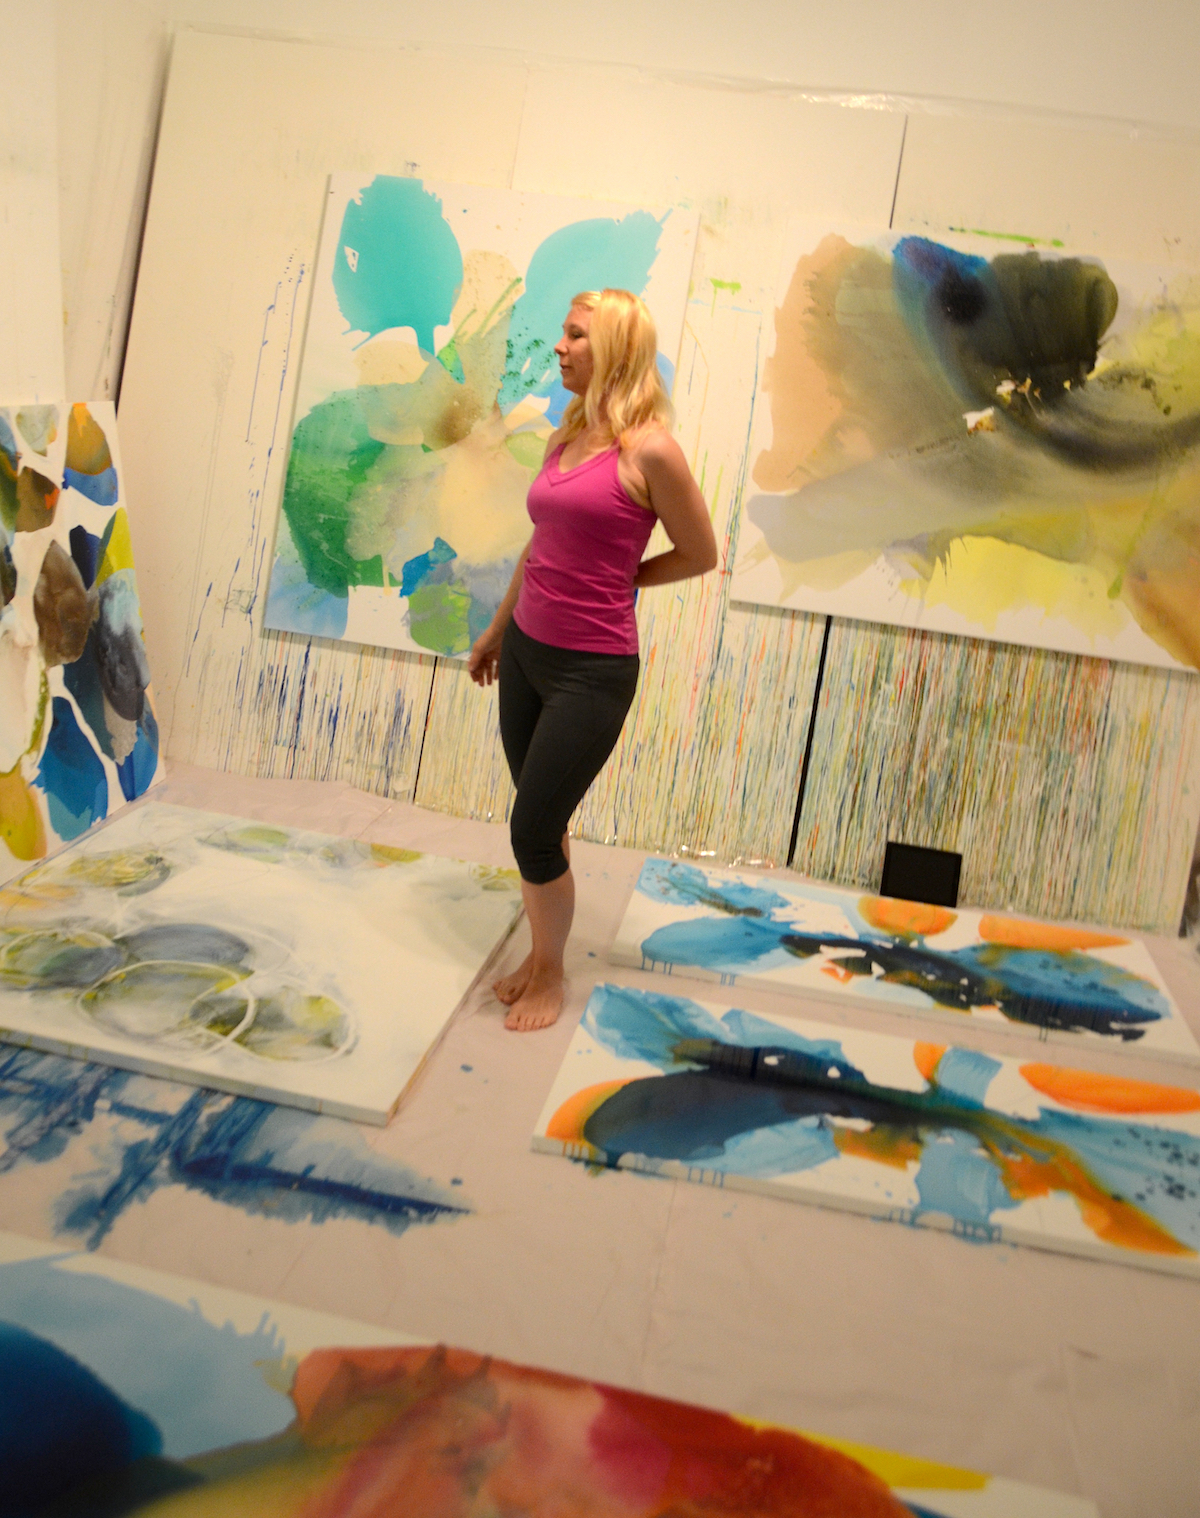 23. Liz in the studio 1.jpg